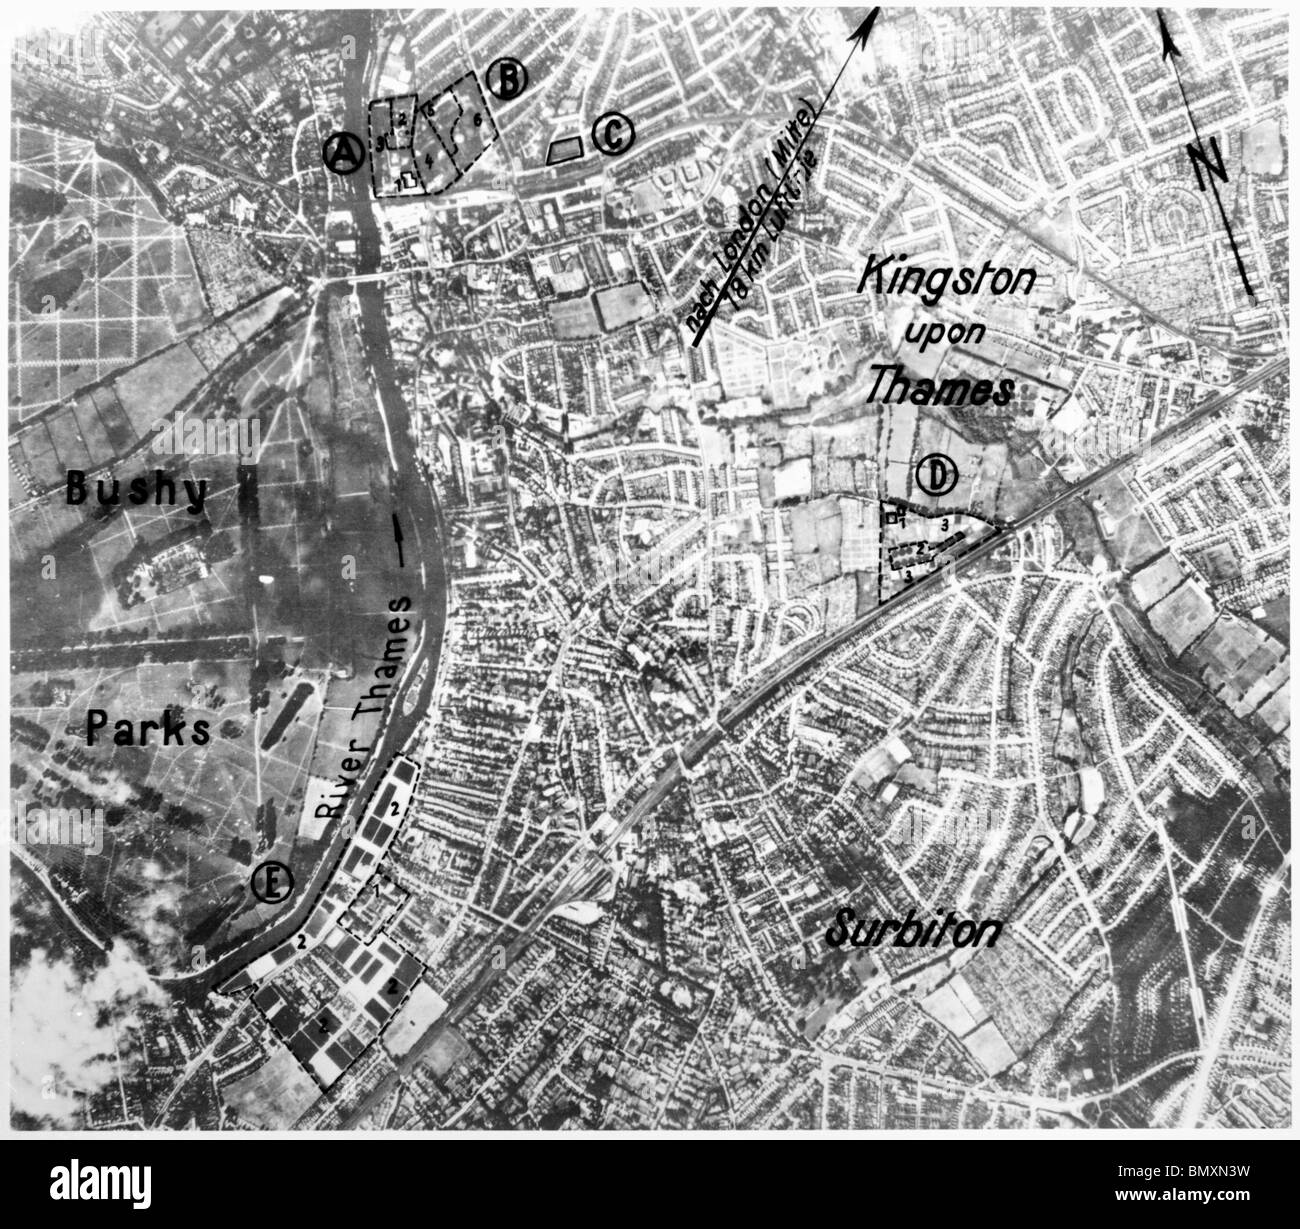 London - Kingston upon Thames & Surbiton 12th August 1940 Waterworks & Hawker Aircraft Factory. - Stock Image